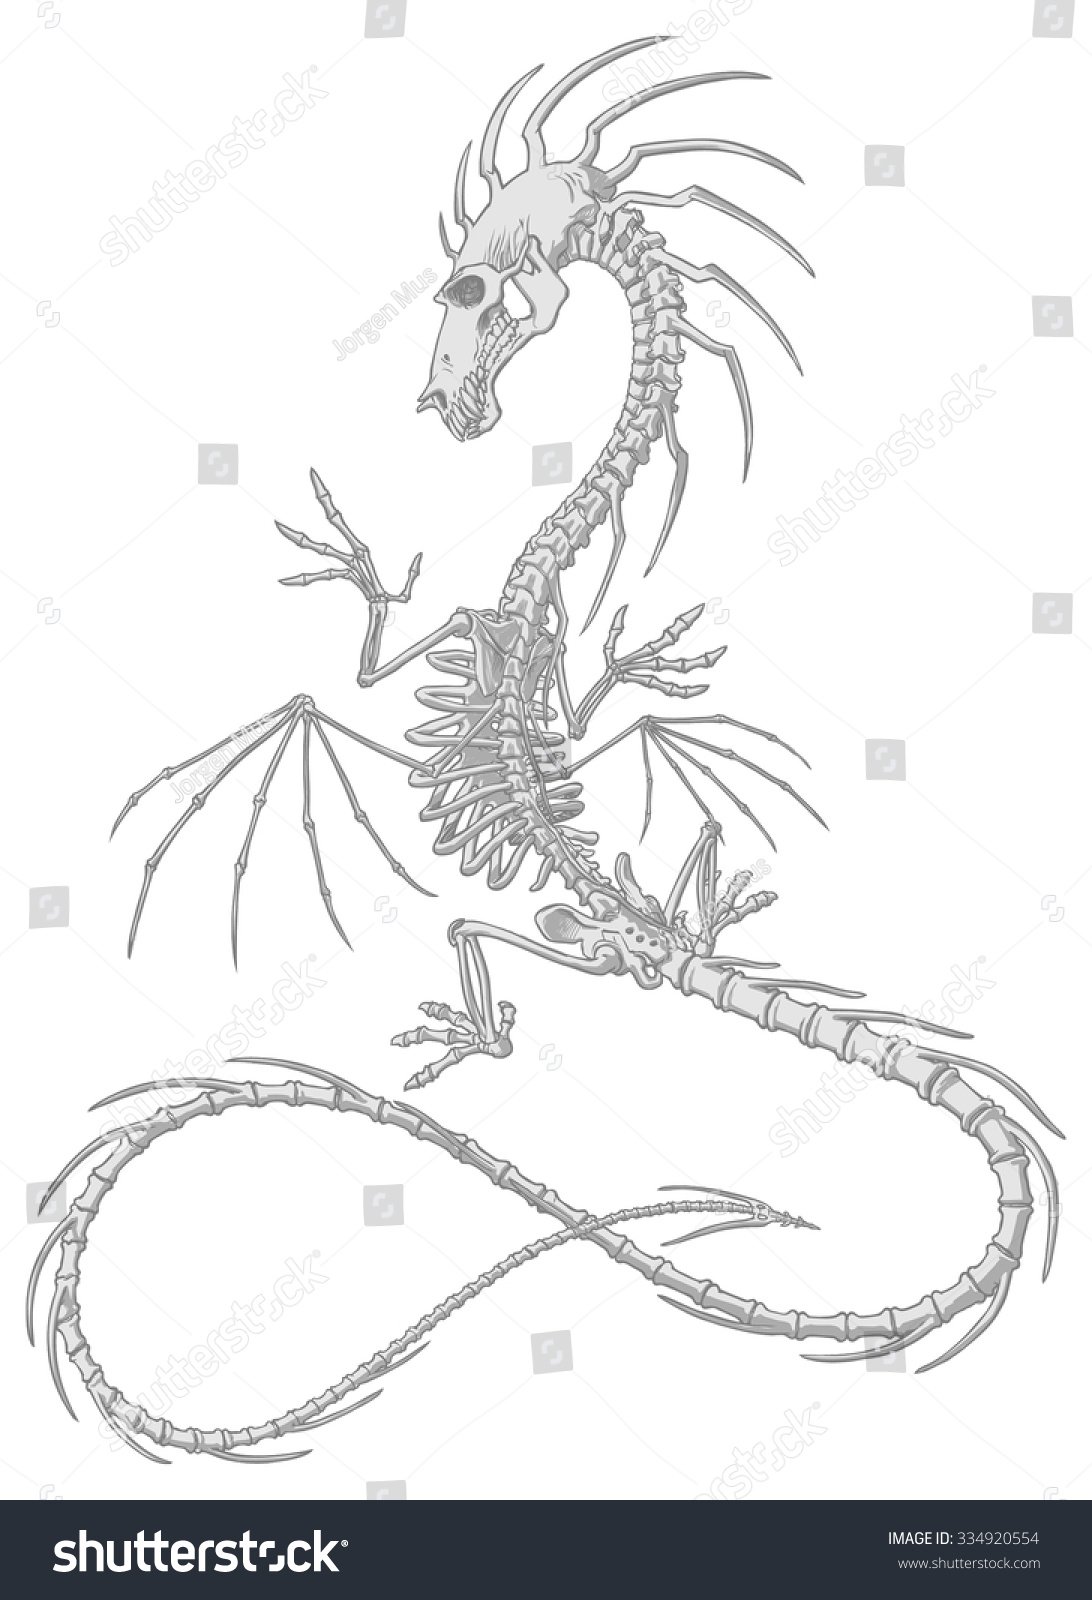 Dragon Skeleton Drawing : dragon, skeleton, drawing, Anatomically, Detailed, Dragon, Skeleton, Lively, Stock, Vector, (Royalty, Free), 334920554